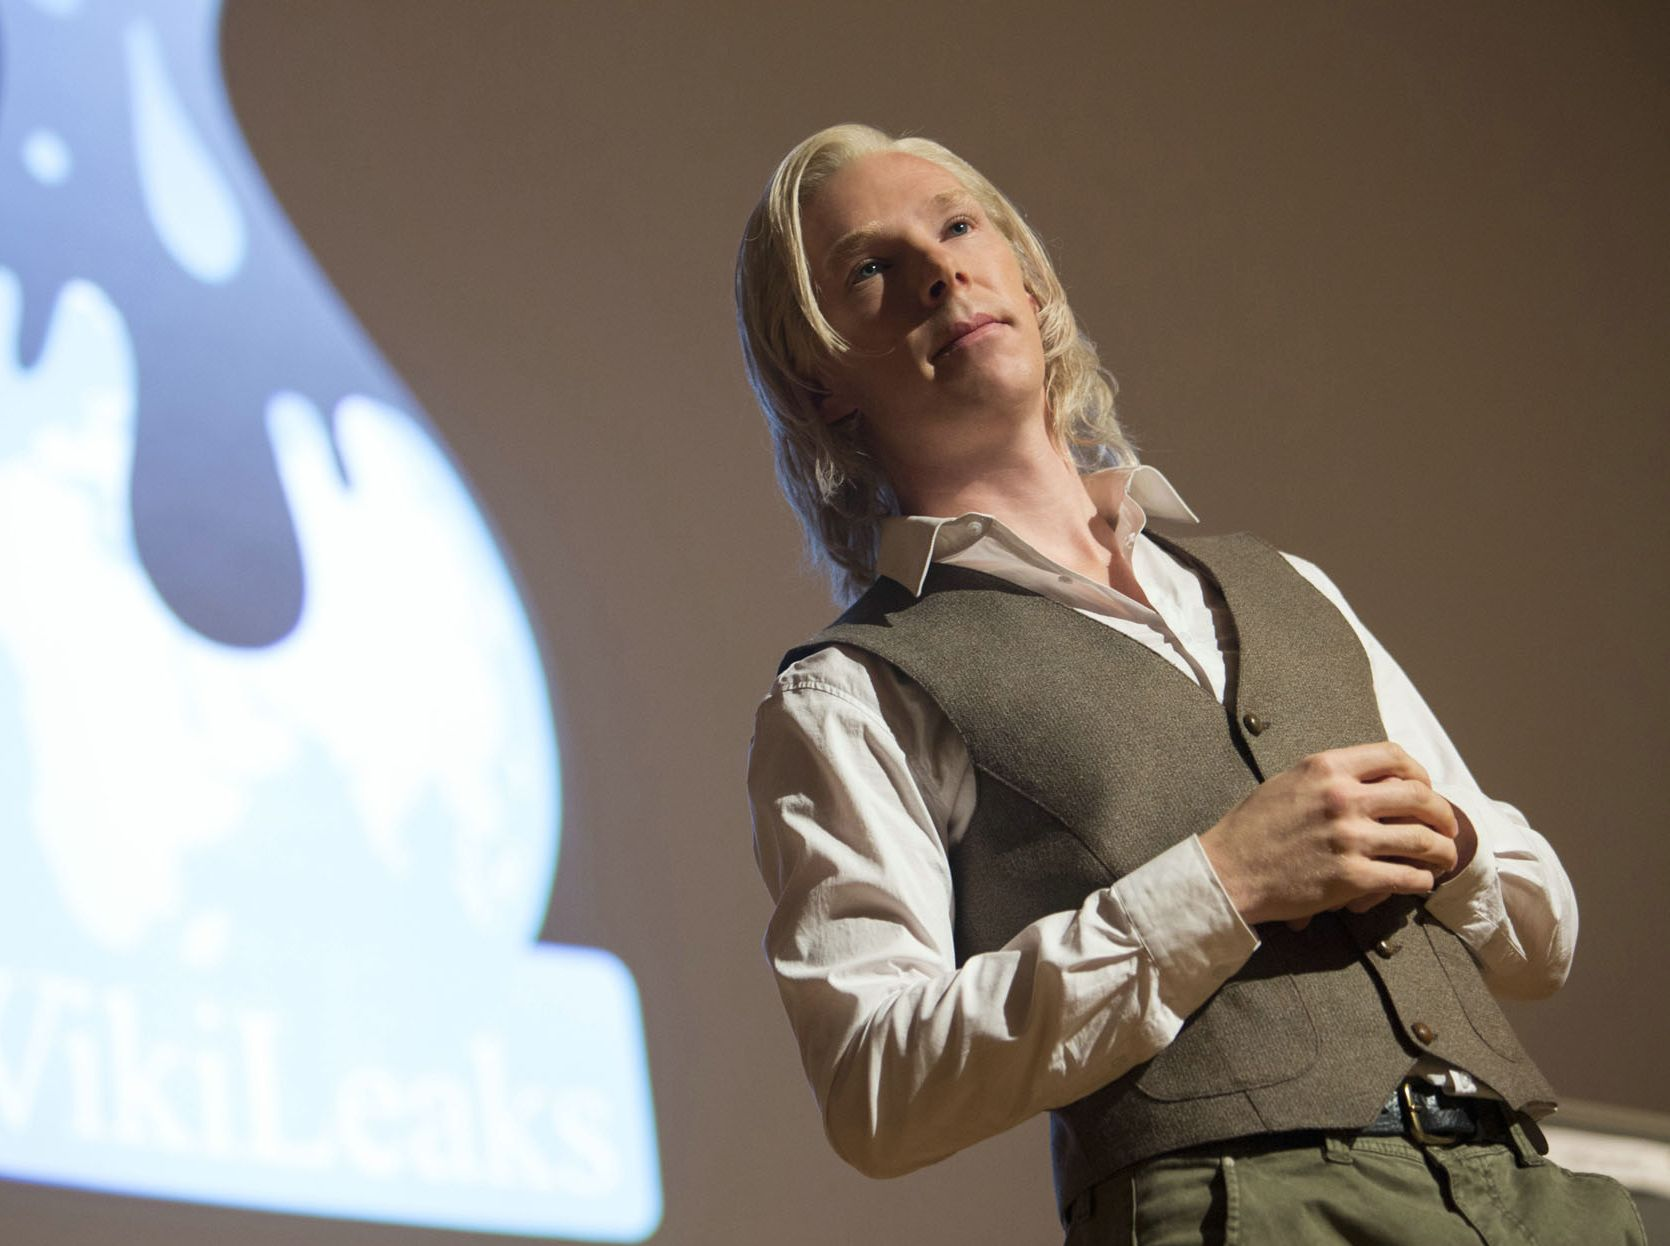 Benedict Cumberbatch As Julian Assange On The Wikileaks Stag Cultjer